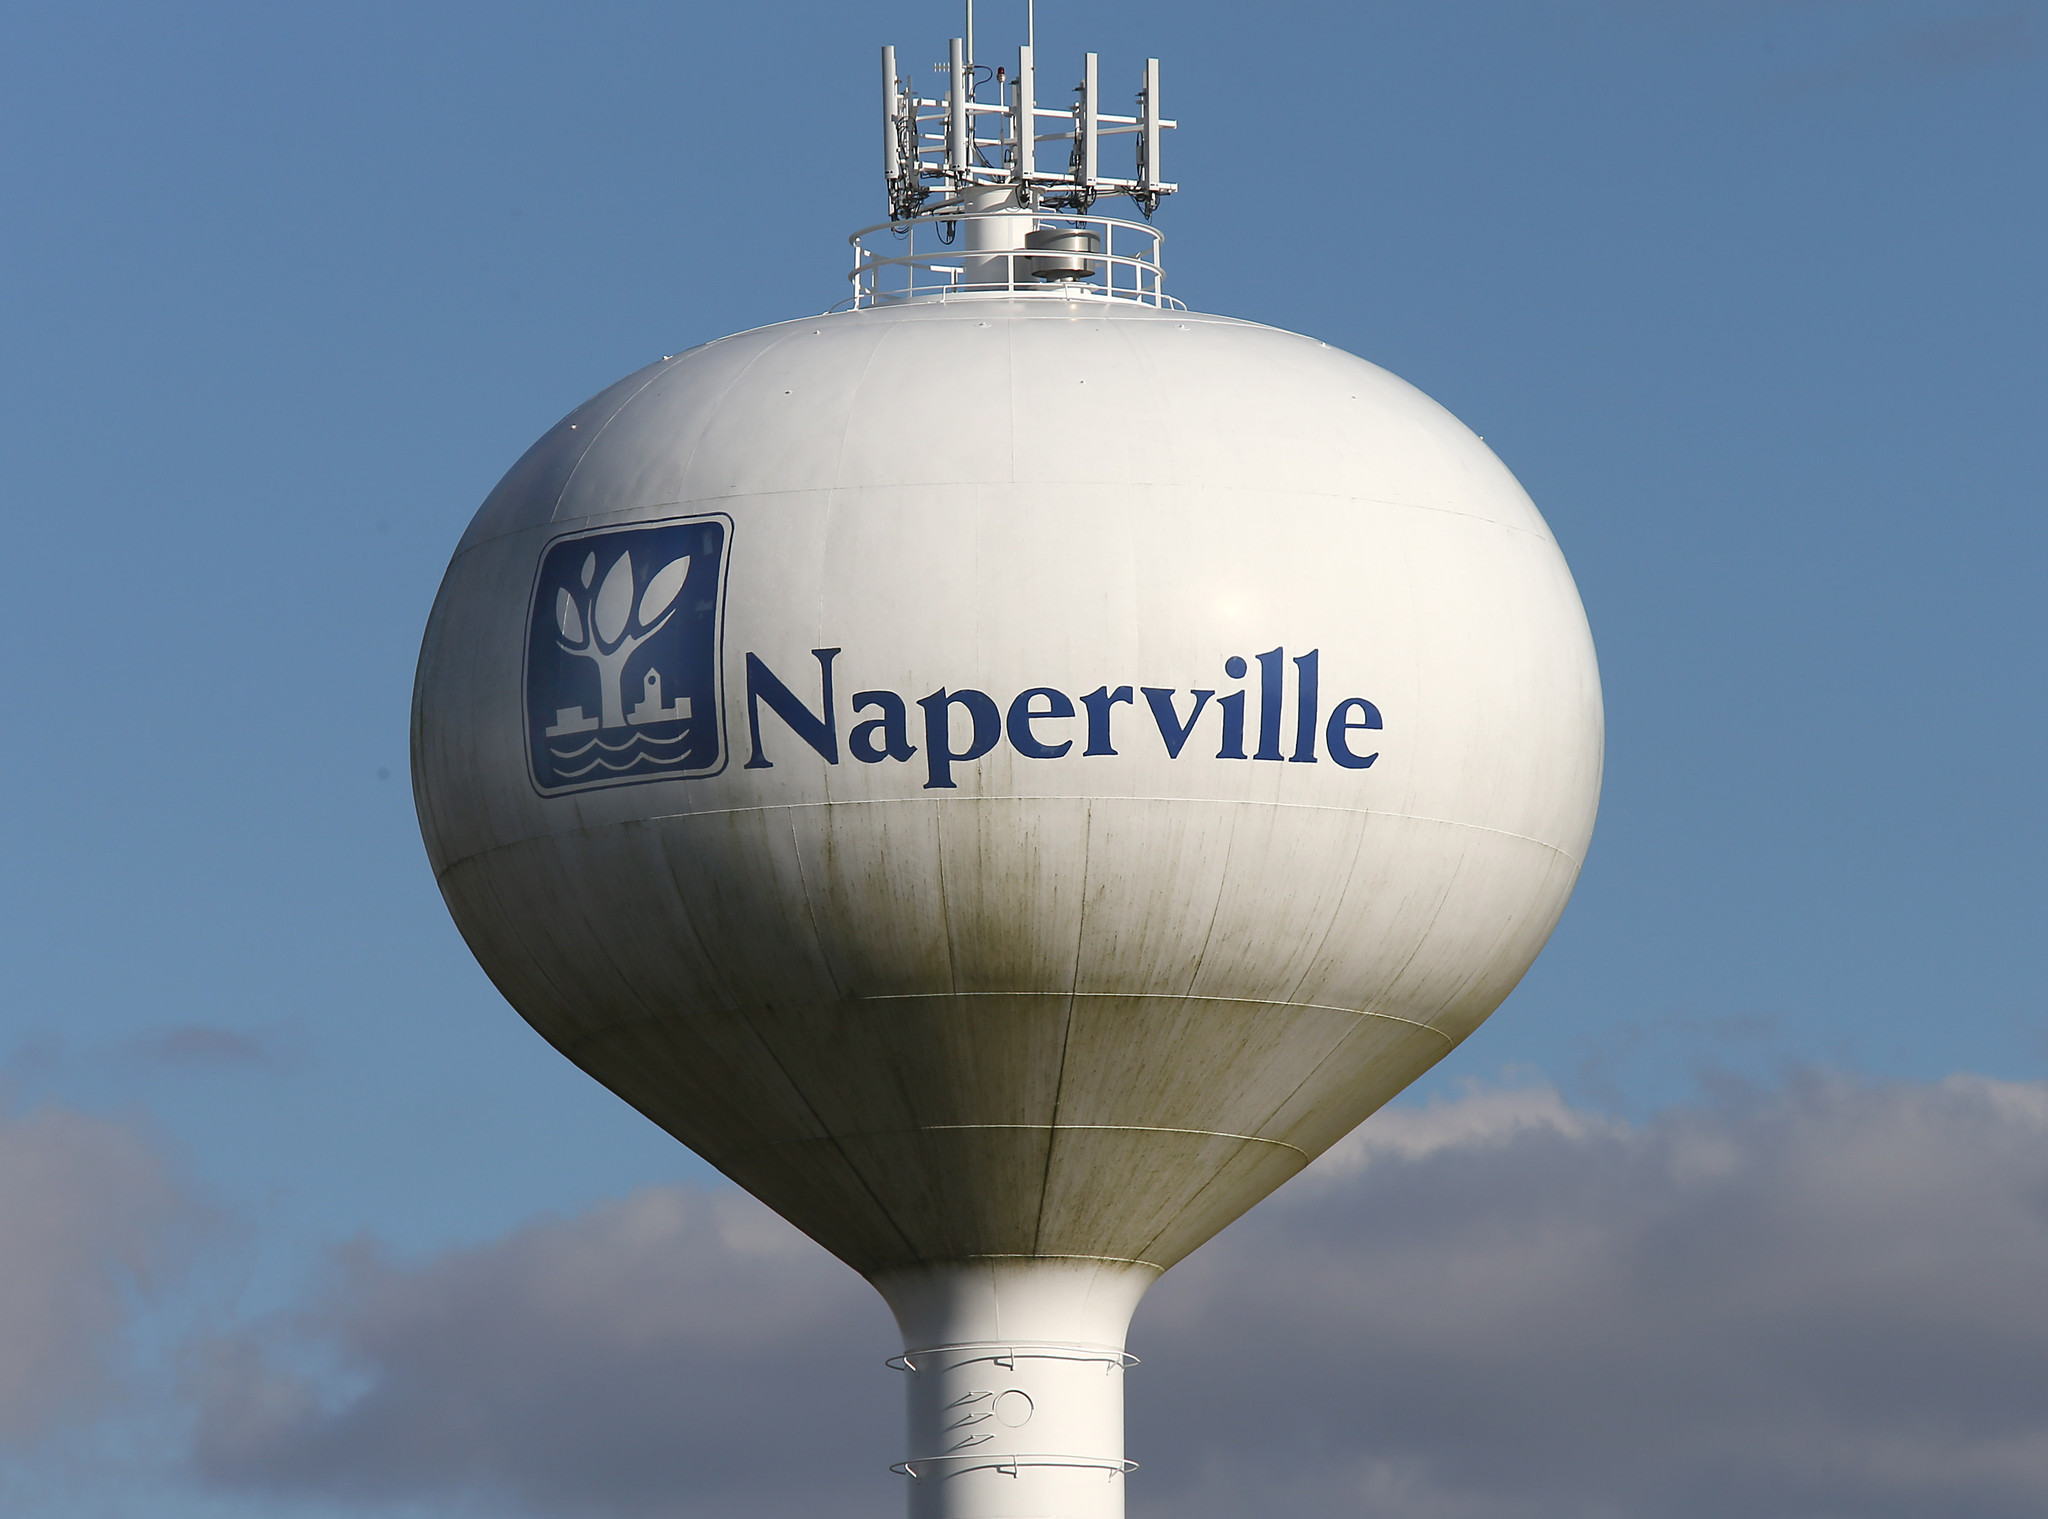 Slew Of New Food Options Expected For Naperville Naperville Sun